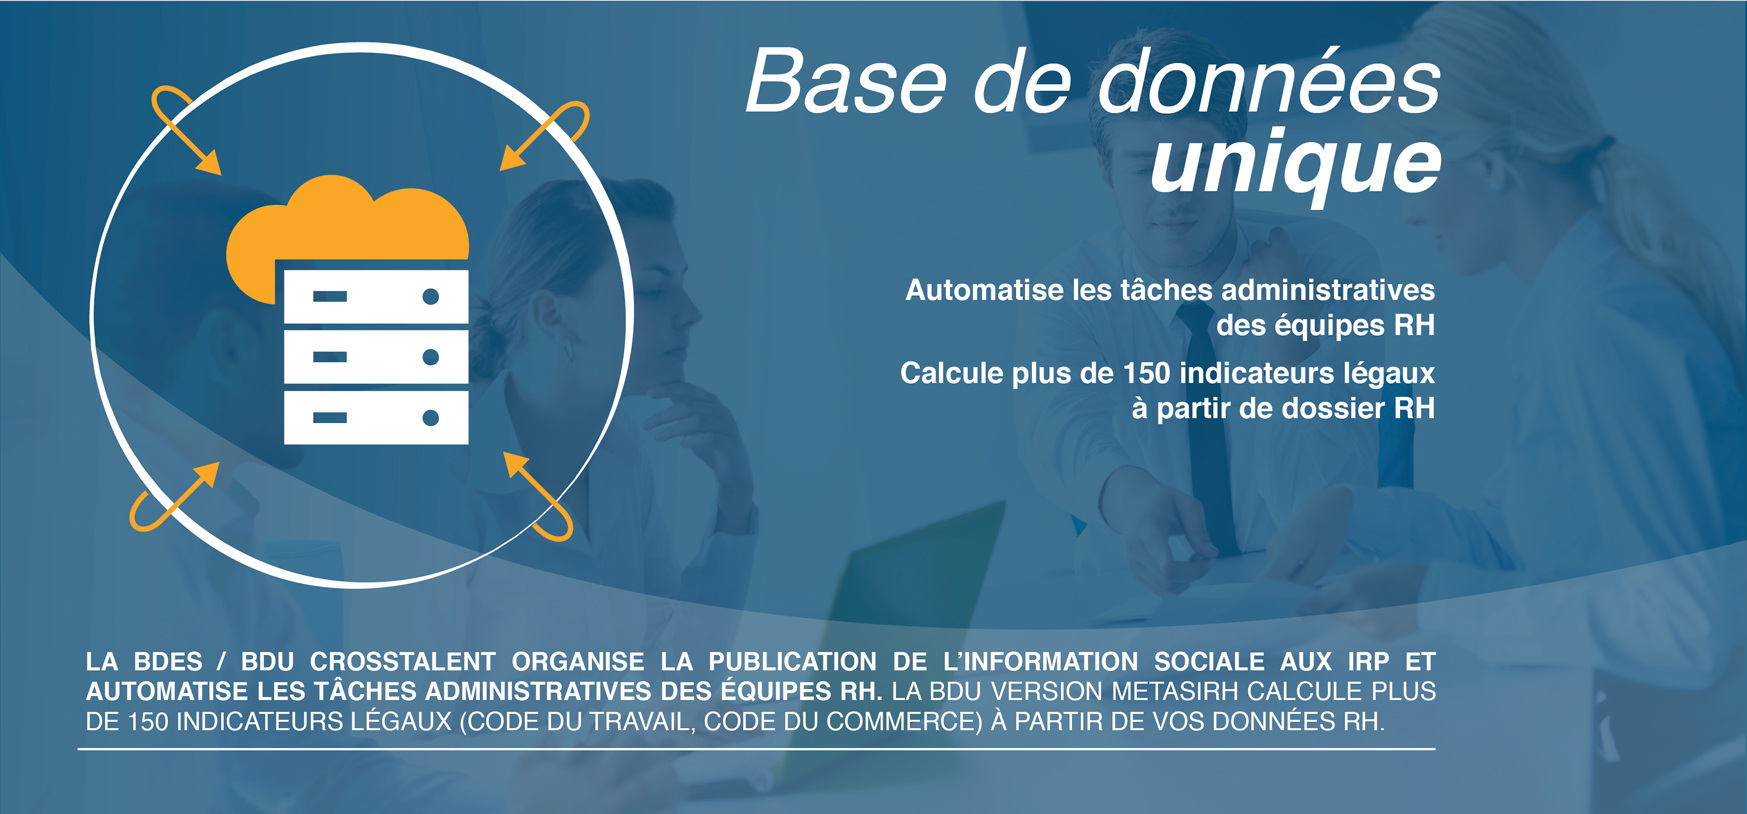 BANNIERE APLLICATION BASE DE DONNEES UNIQUE CROSSTALENT